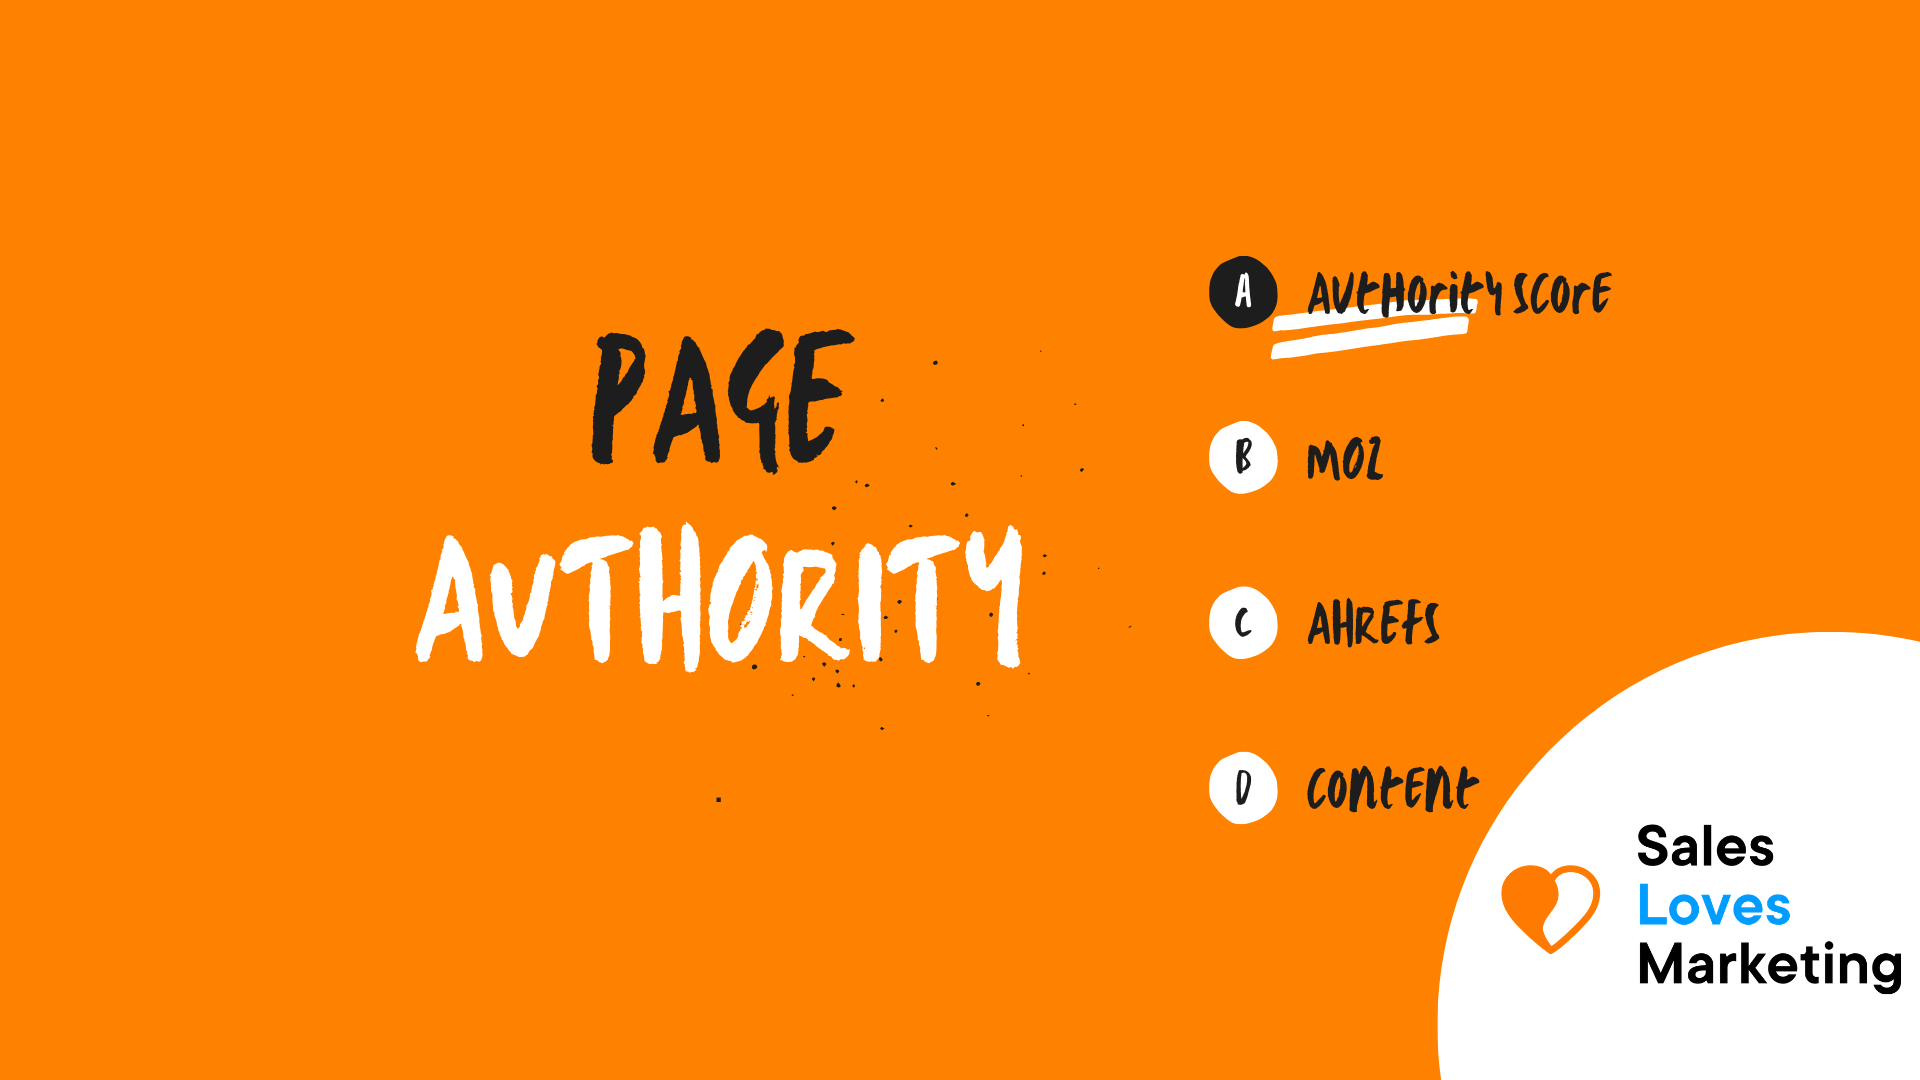 Page Authority (PA)